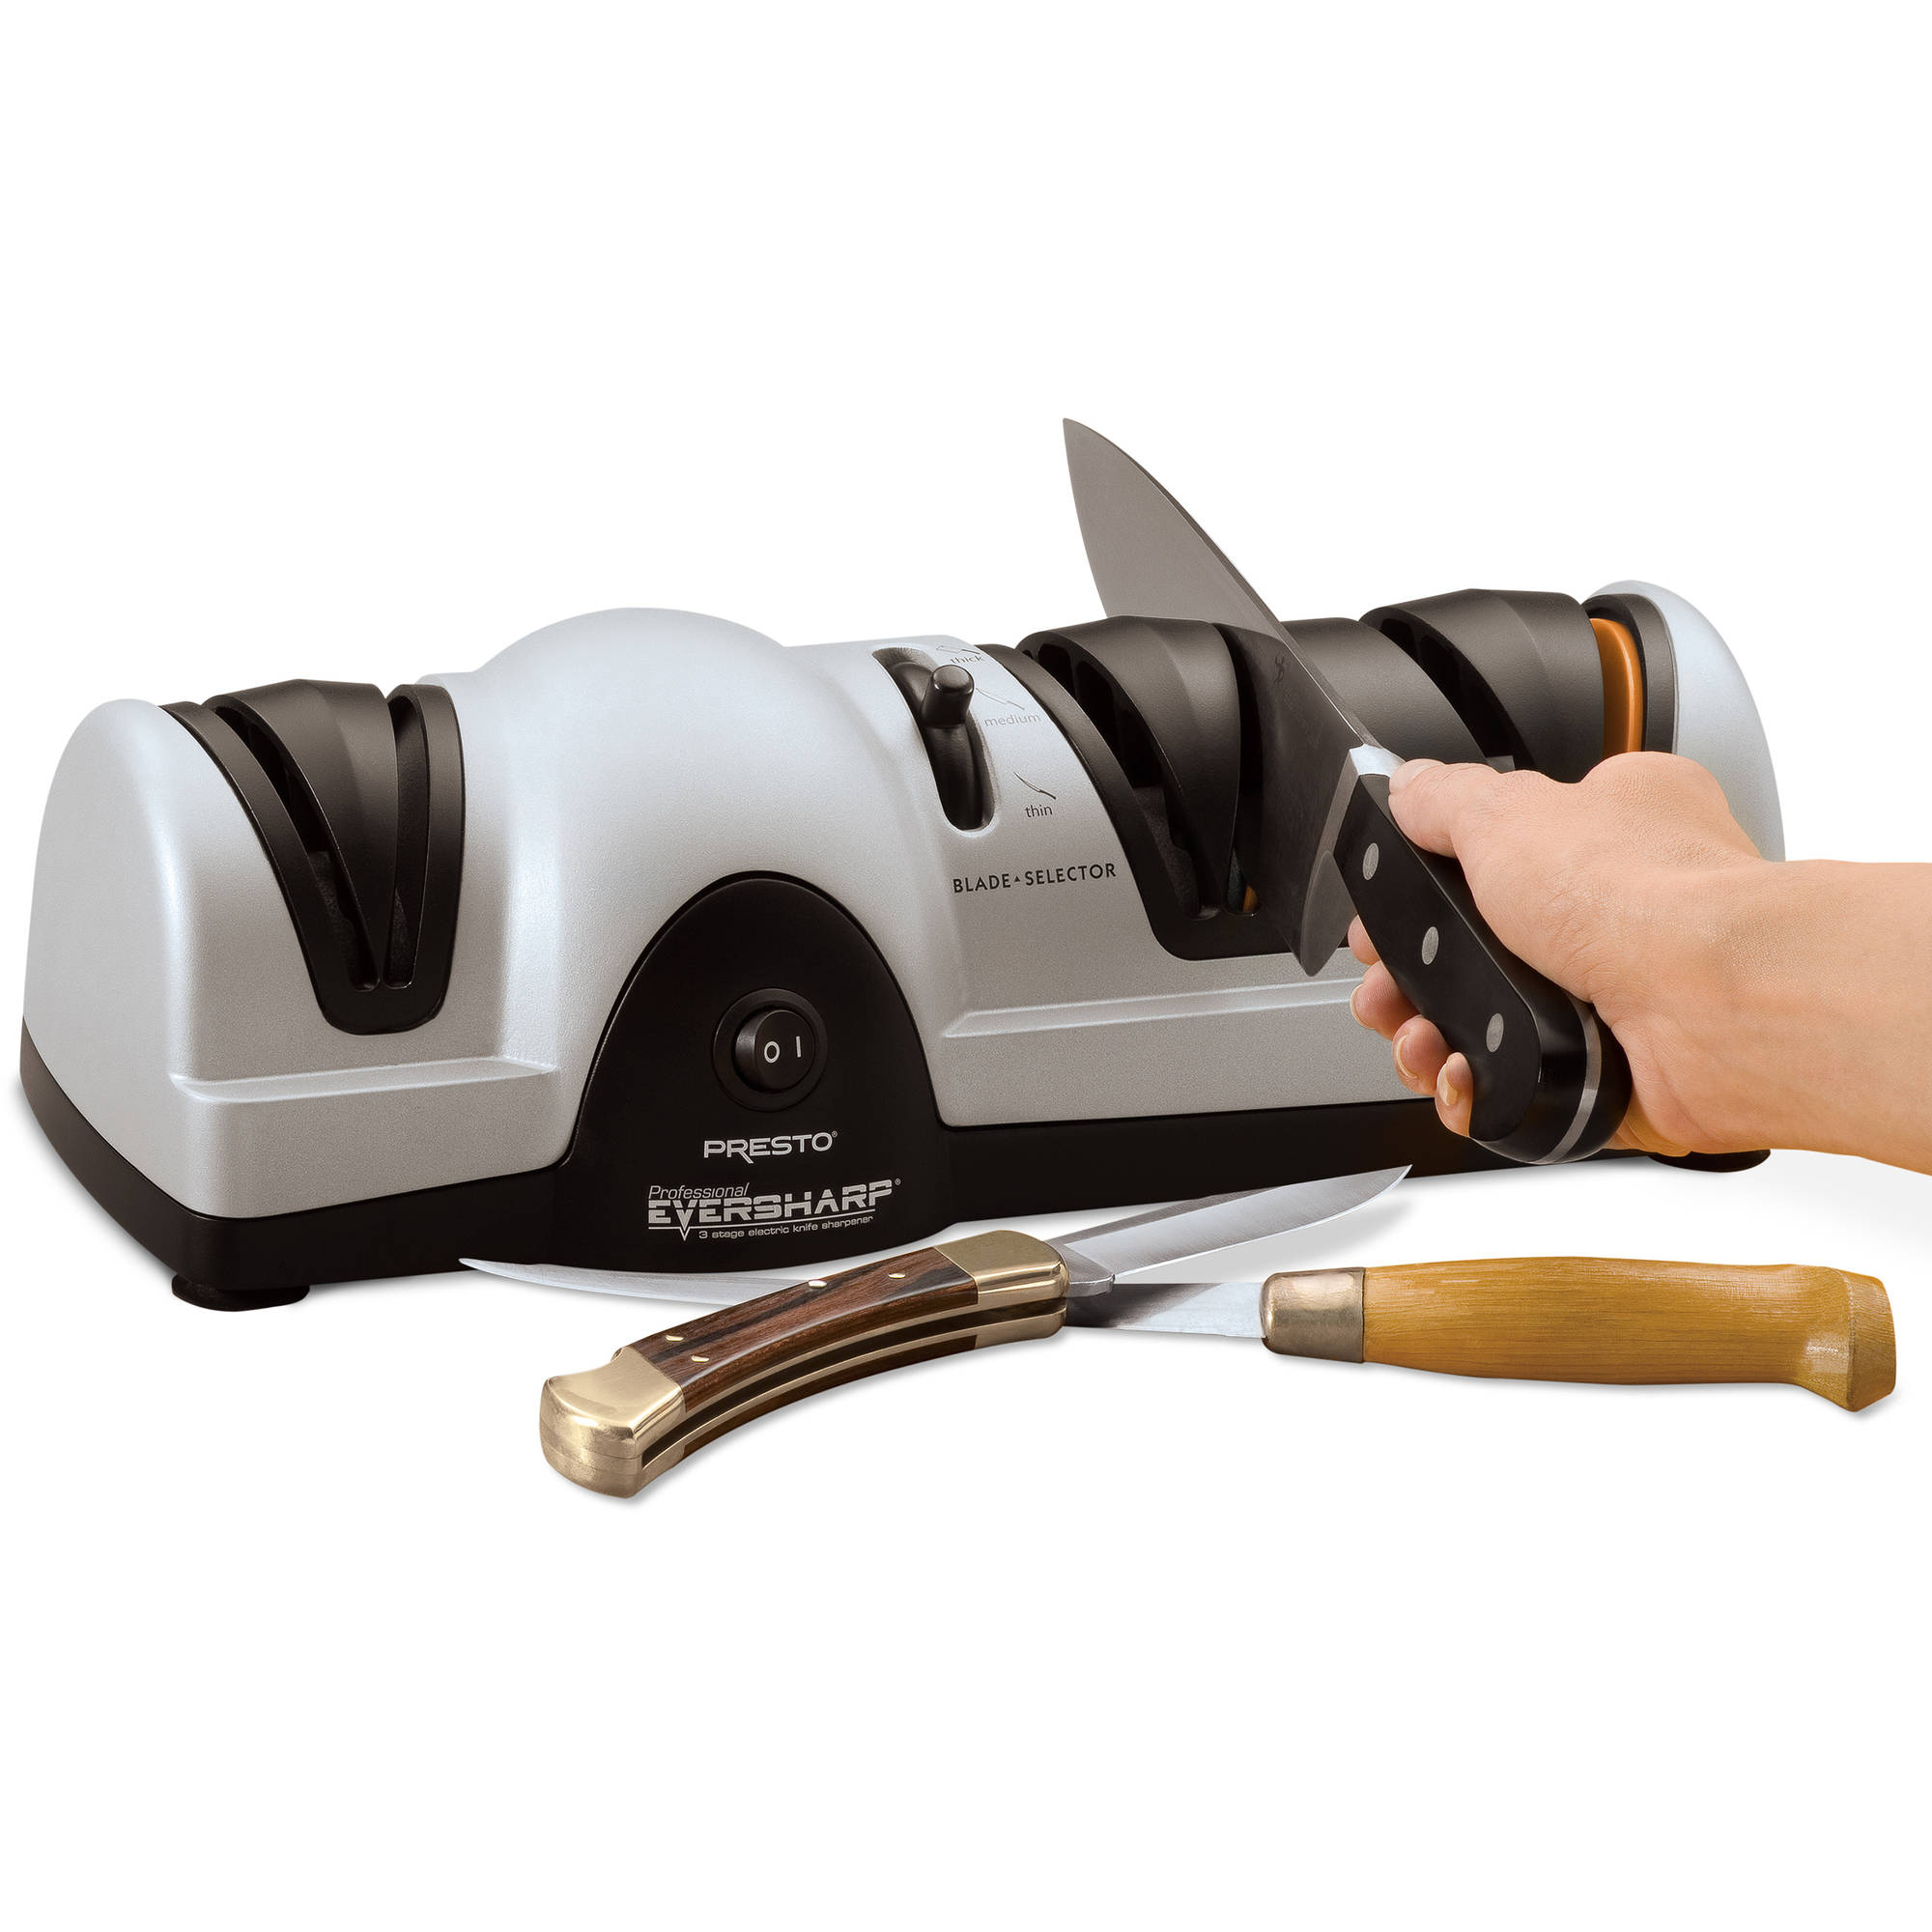 presto eversharp electric knife sharpener - walmart